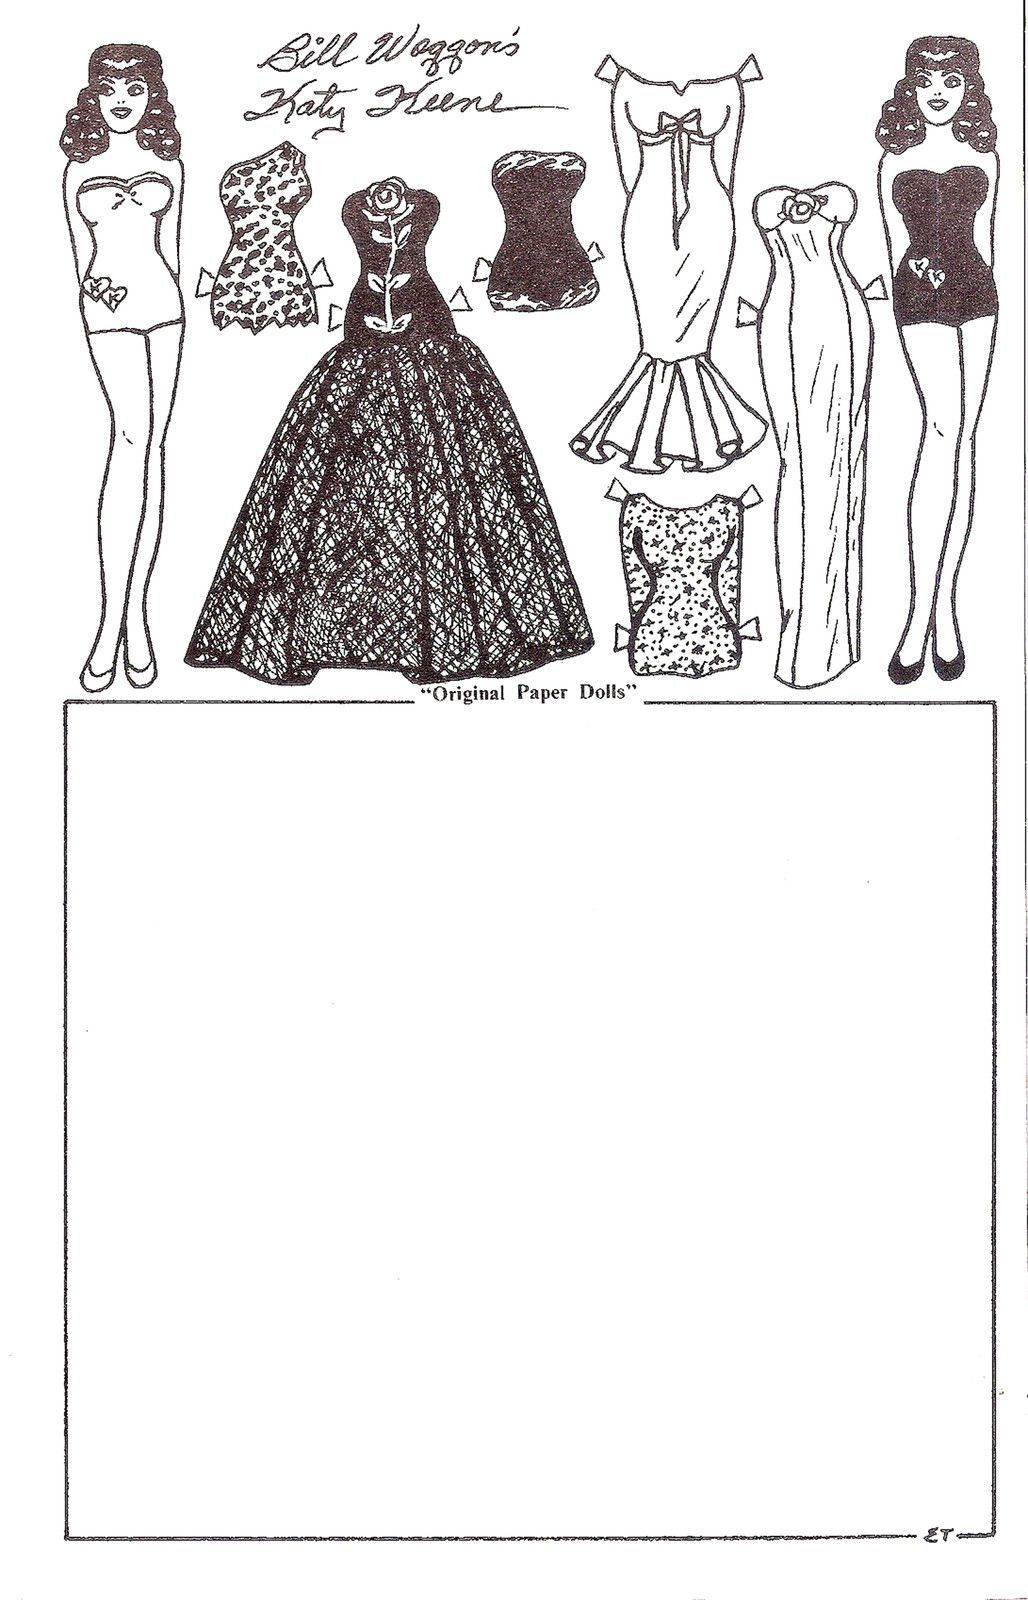 10 sheets katy keene paper doll stationary by emma terry